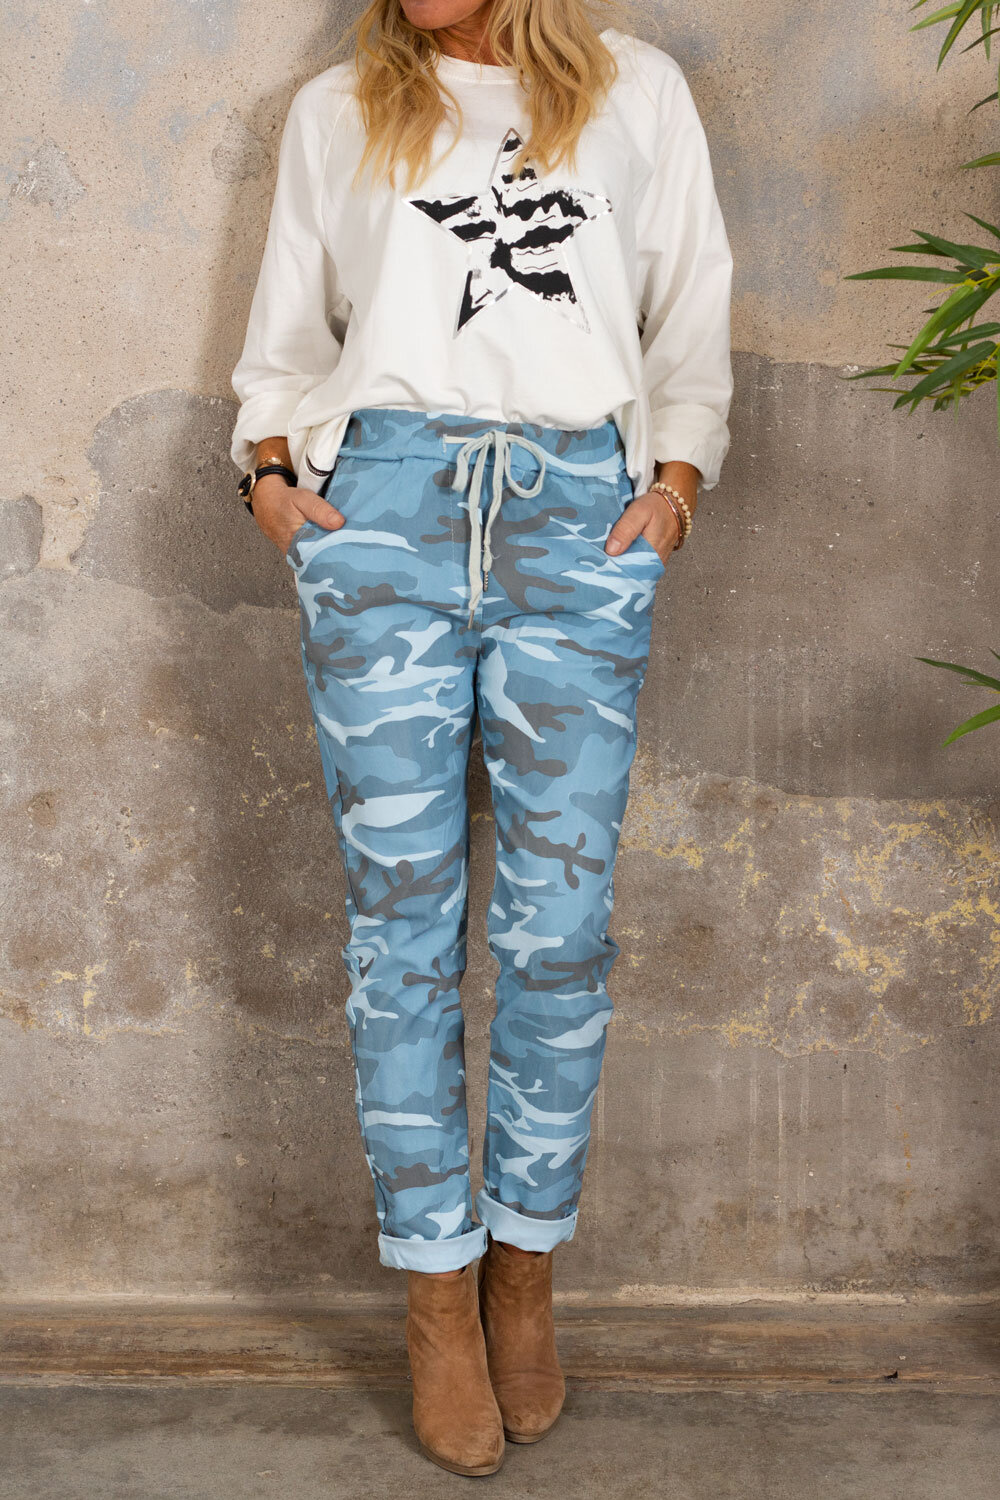 Stretchy pants 3385 - Camouflage - Blue